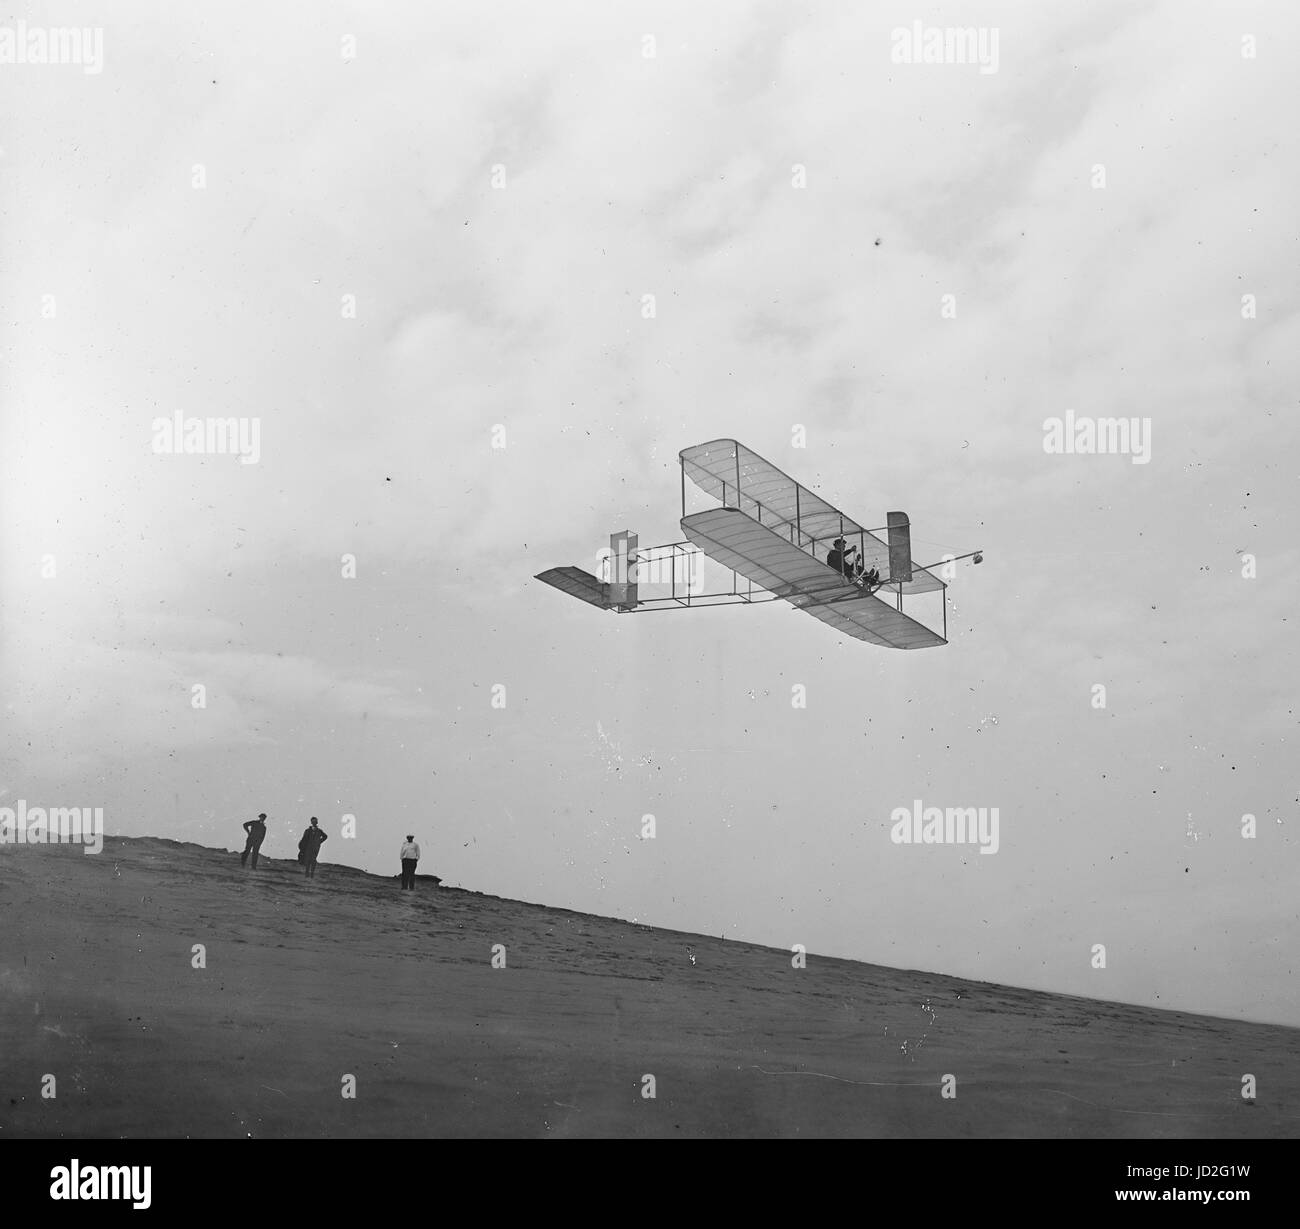 Right front view of Wright Brothers glider in flight. - Stock Image